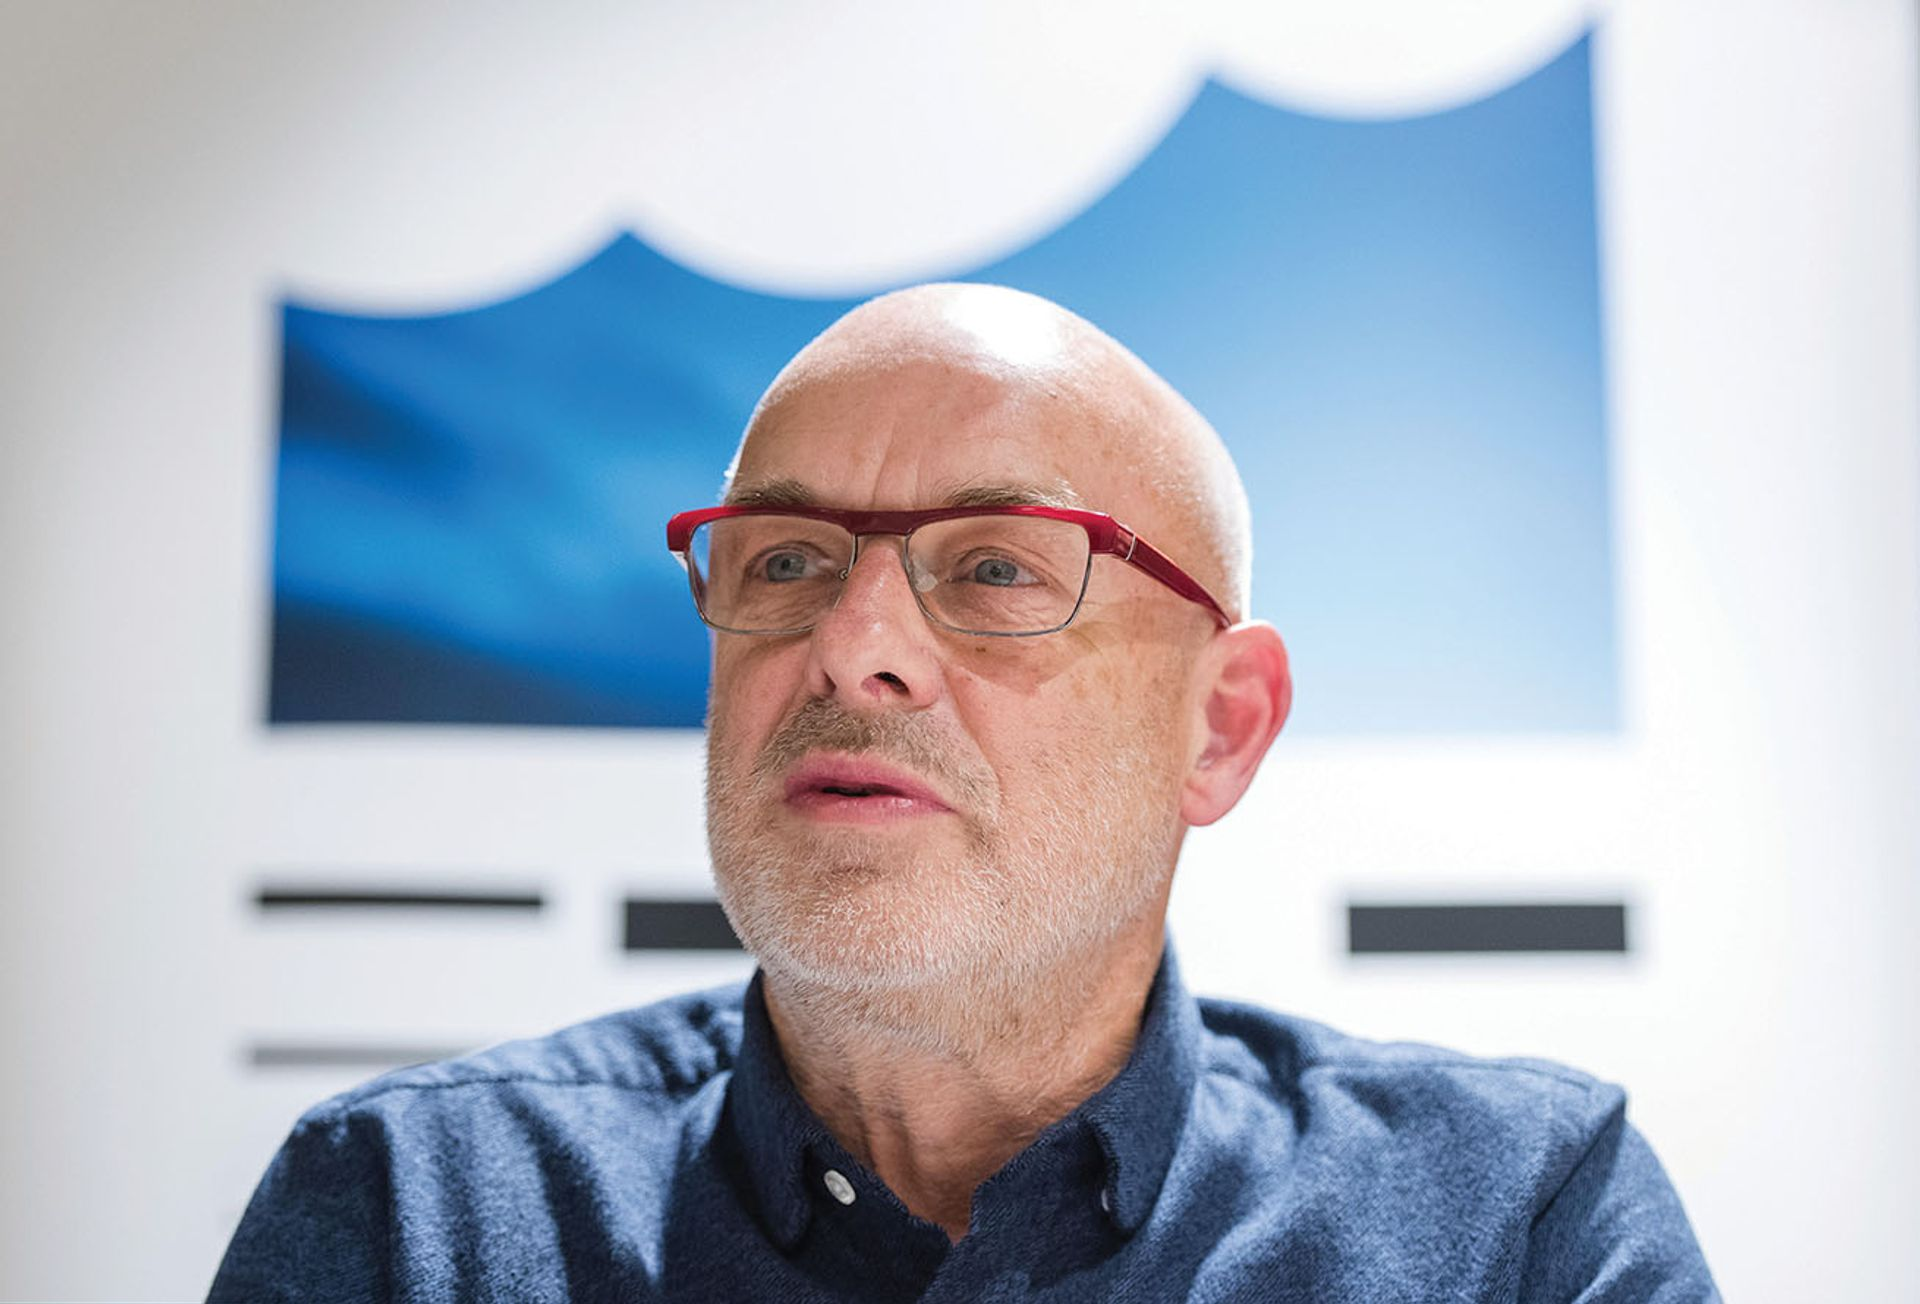 Brian Eno, musician, artist and founder of EarthPercent  Daniel Bockwoldt; DPA picture alliance/Alamy Stock Photo